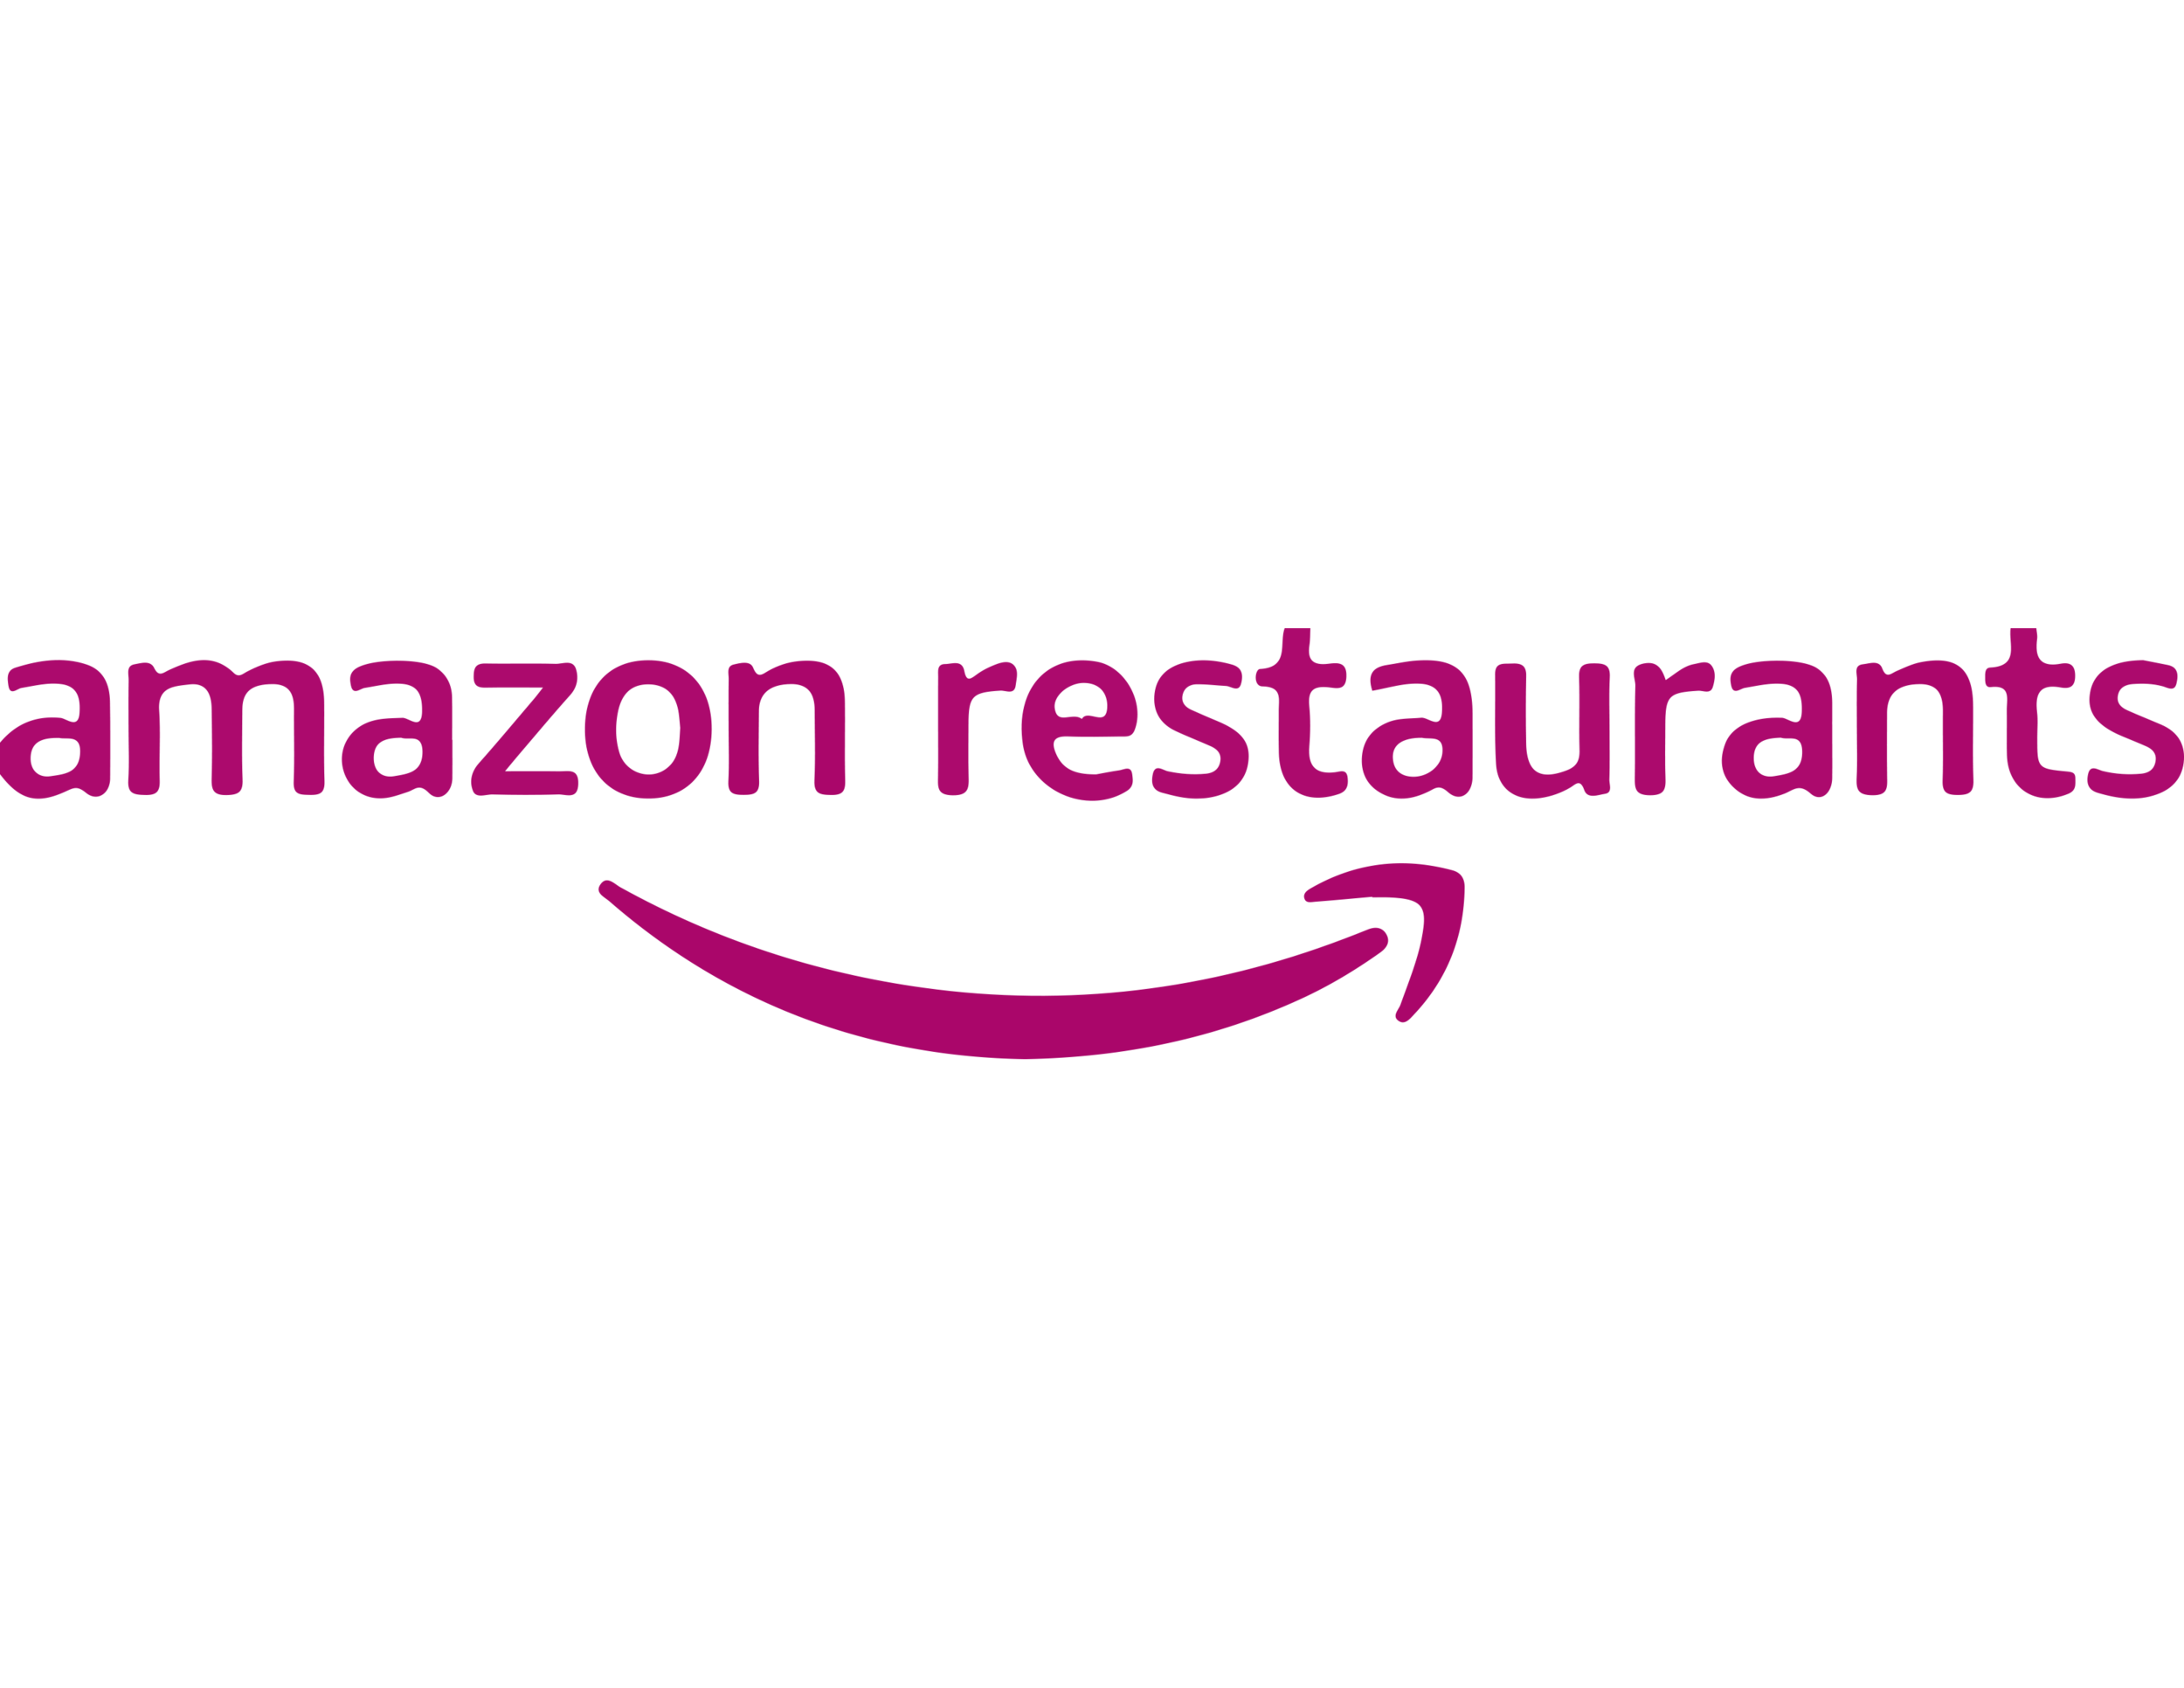 amazon_restaurants.png